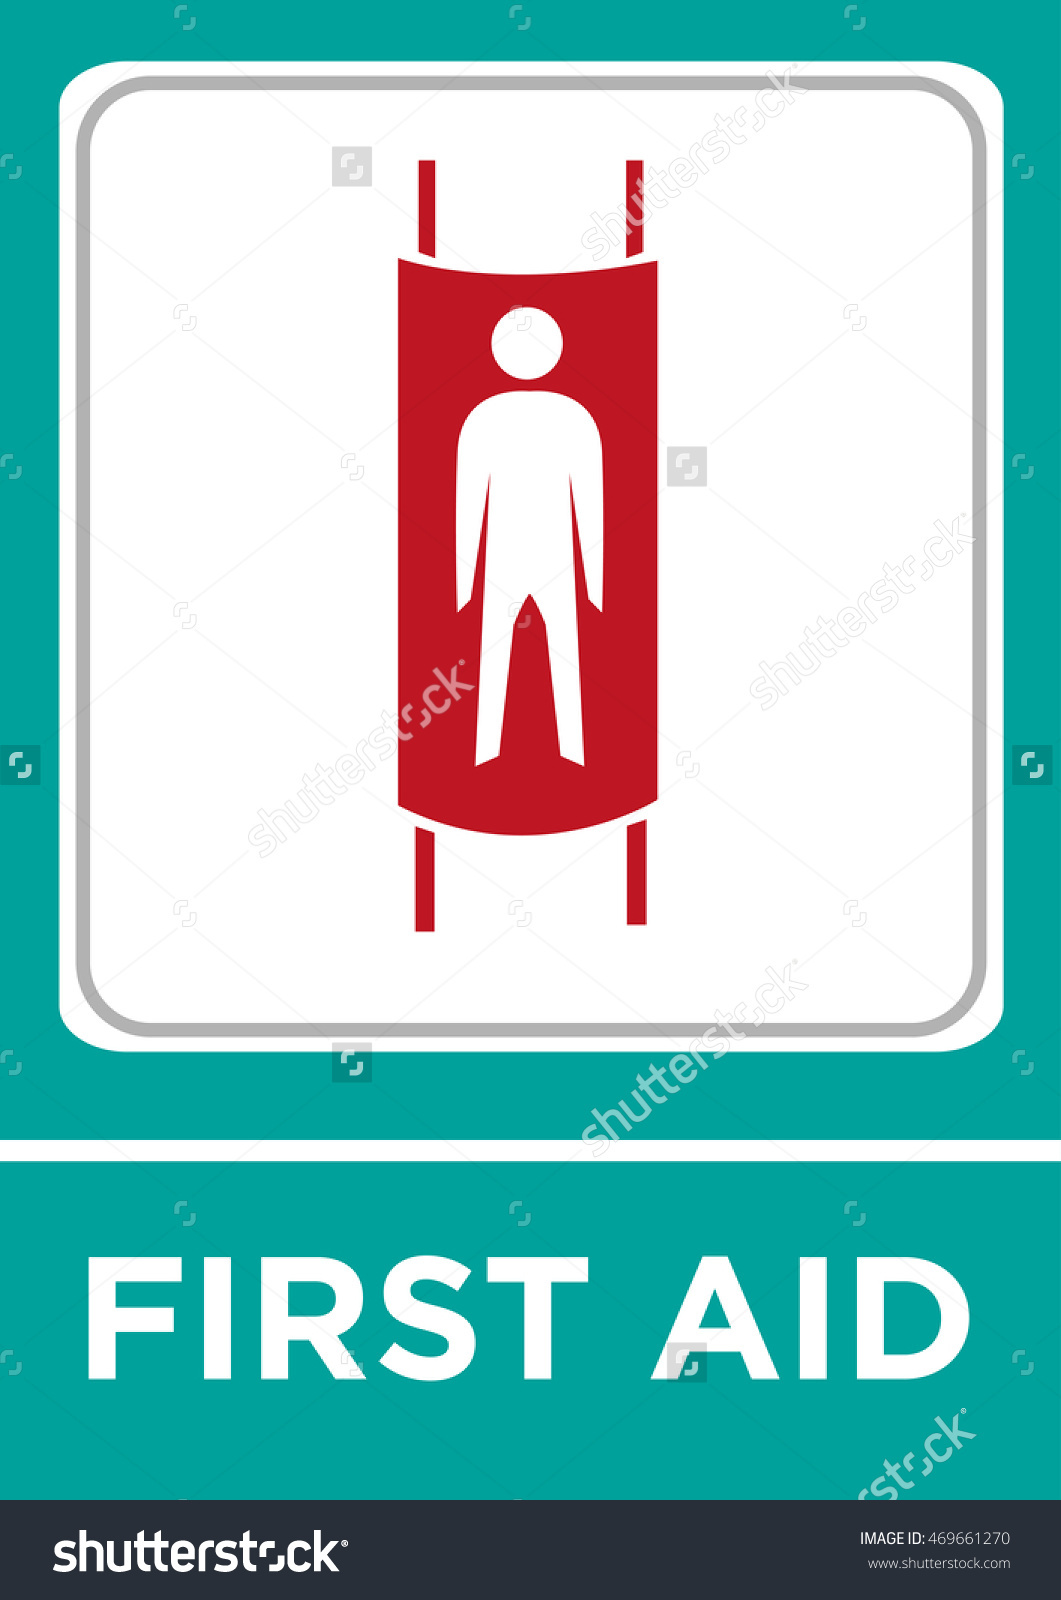 First Aid Concept Of A Human Figure In A Stretcher. Editable Clip.